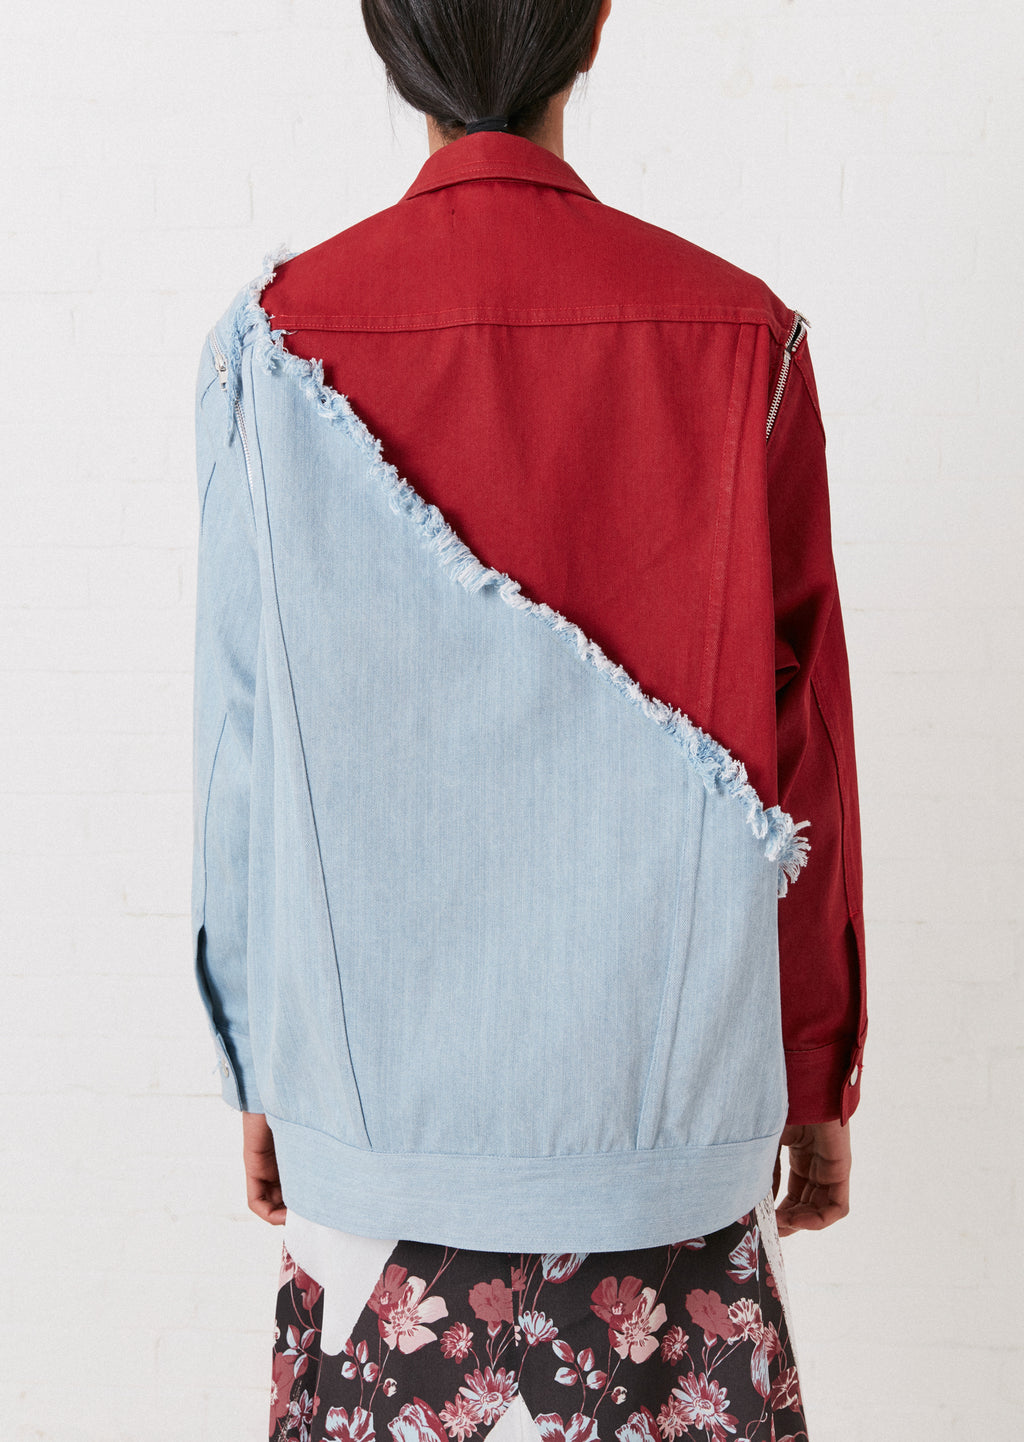 Vivid Contrast Oversized Denim Jacket By House of Holland